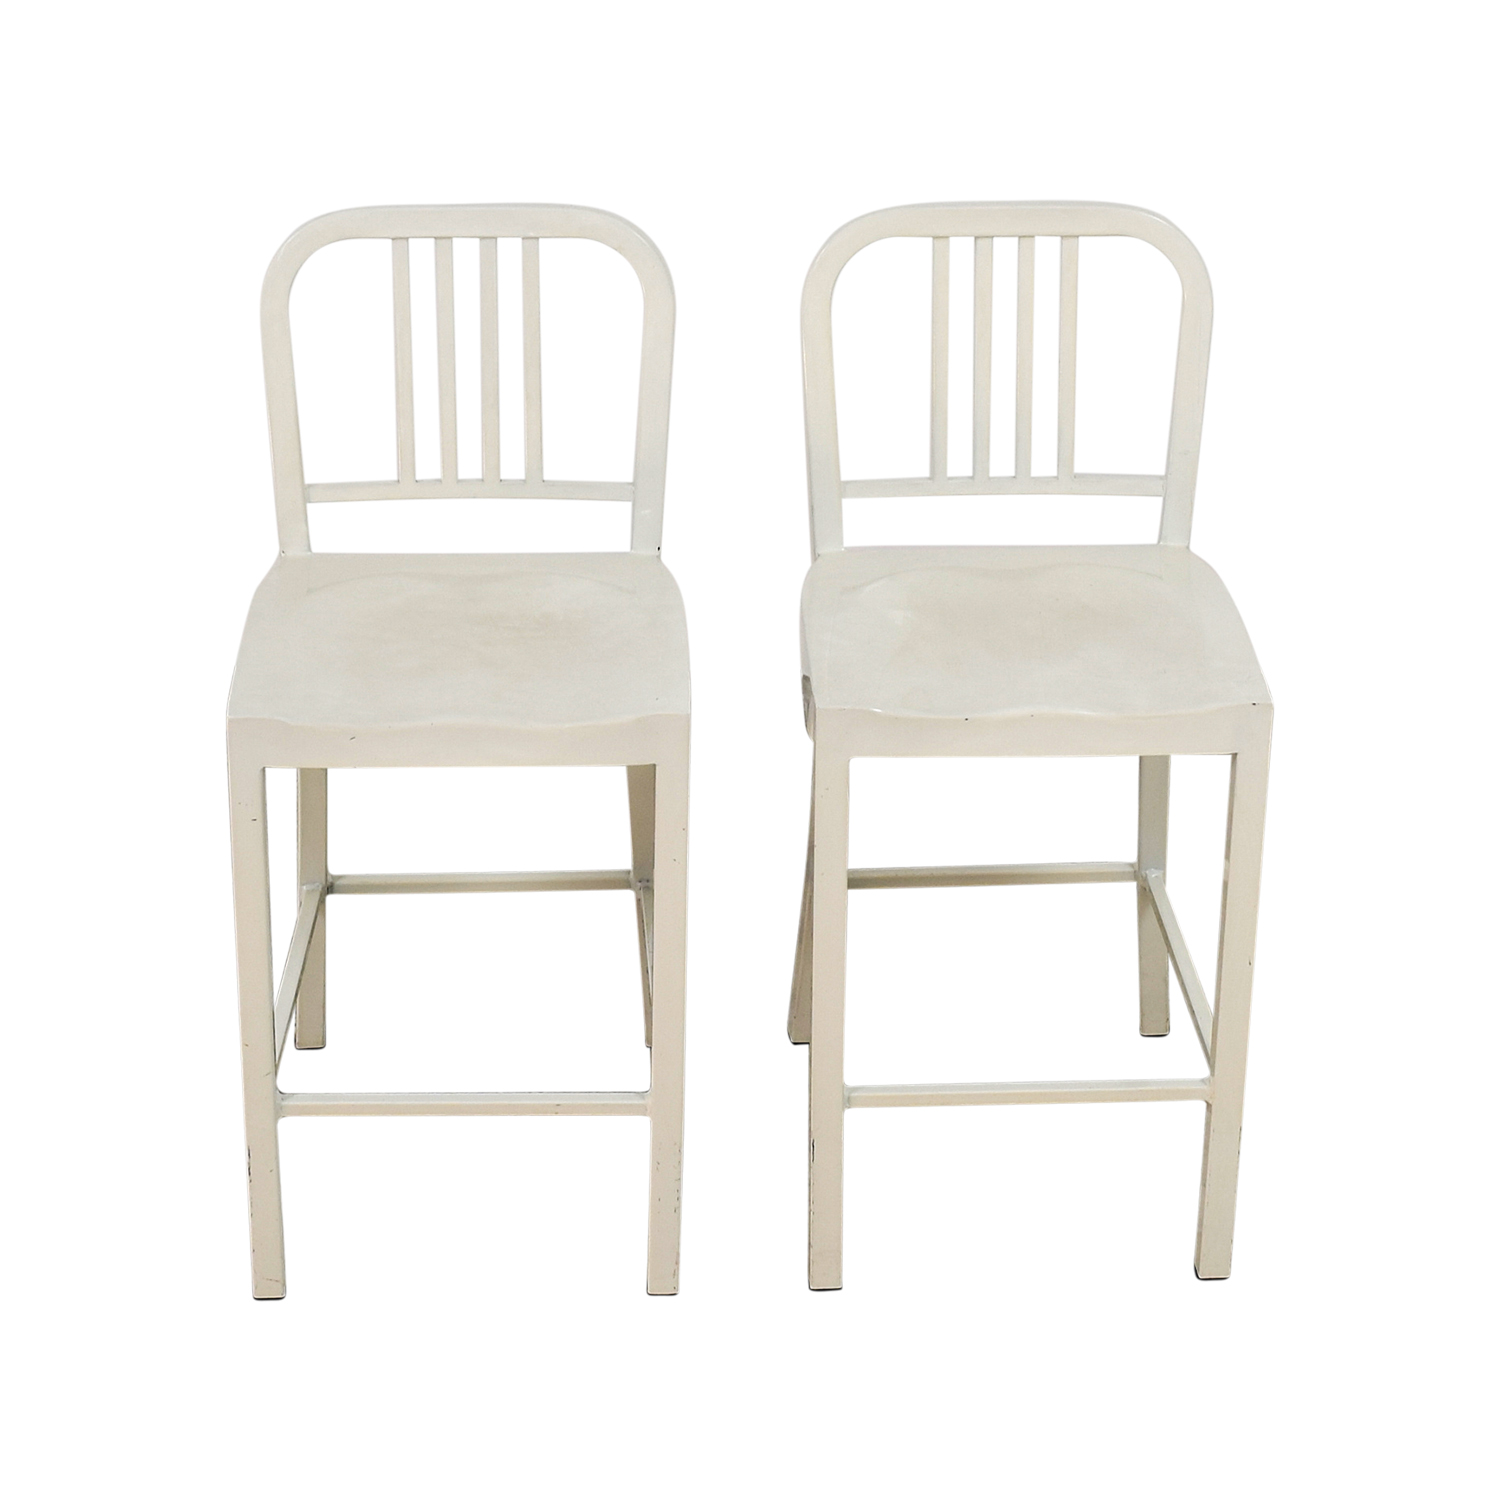 Buy White Metal Chairs; White Metal Chairs Dimensions ...